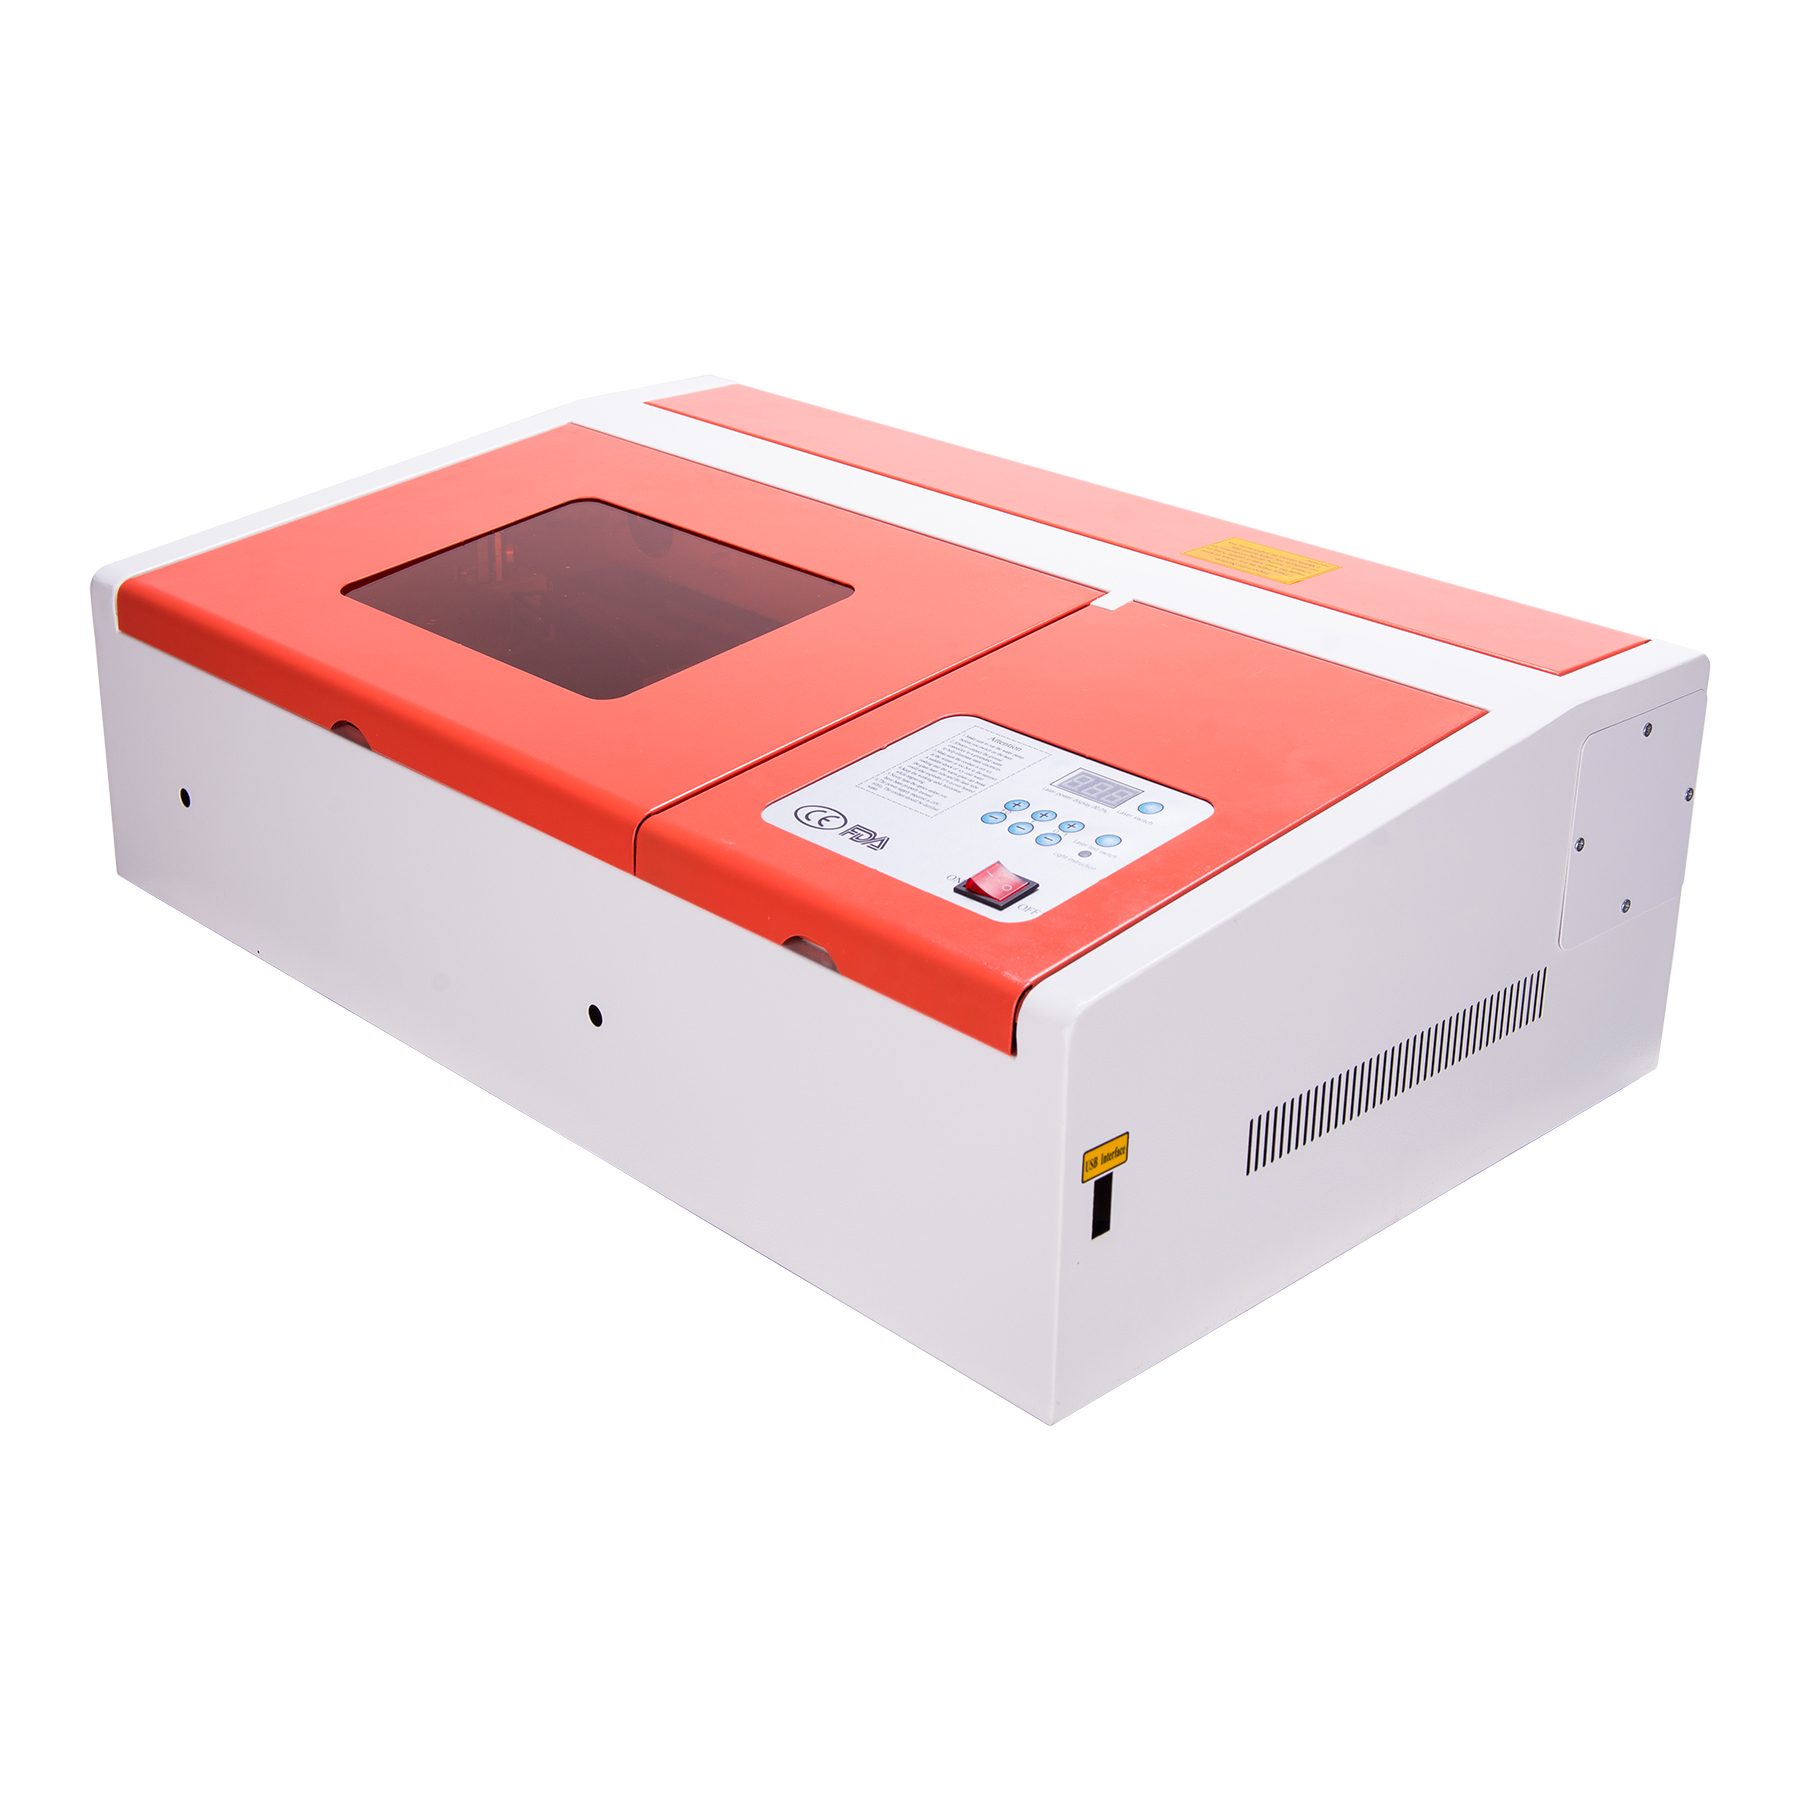 Upgraded 40W CO2 Laser Engraver Cutting Engraving Machine Water-Break Protection